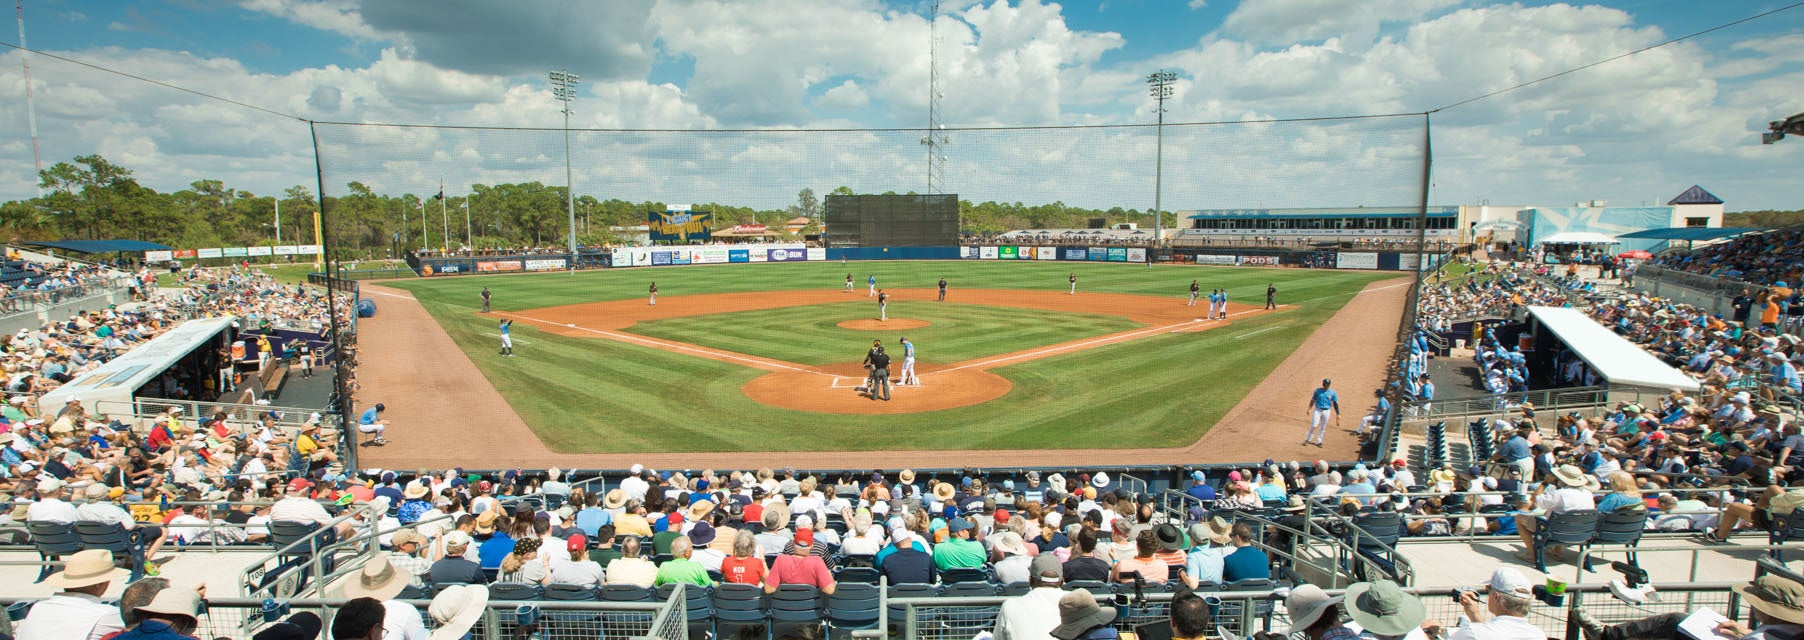 Rays - Spring Training Tickets